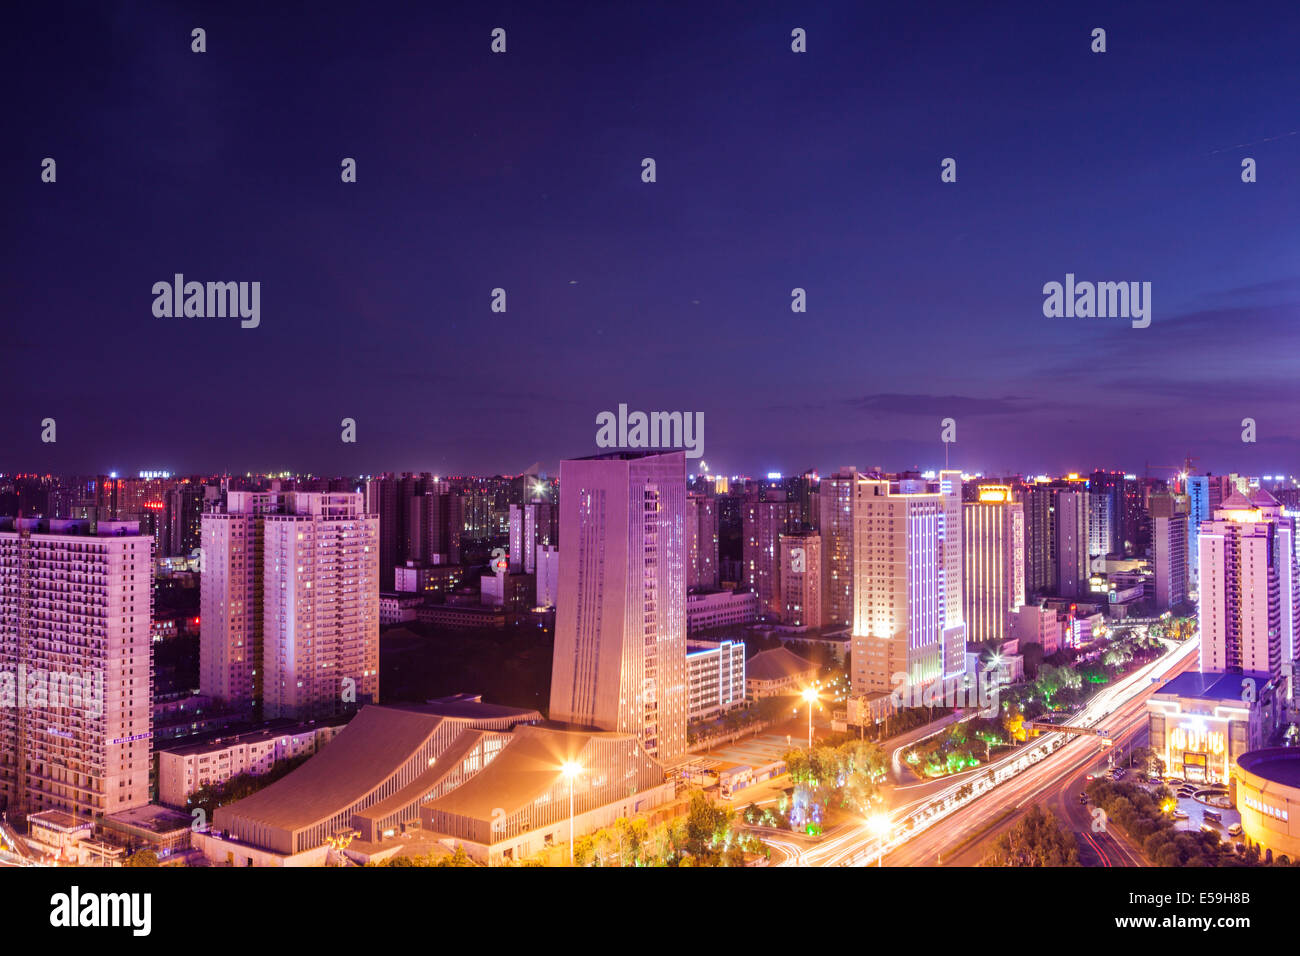 cityscape at night in Xi'an - Stock Image